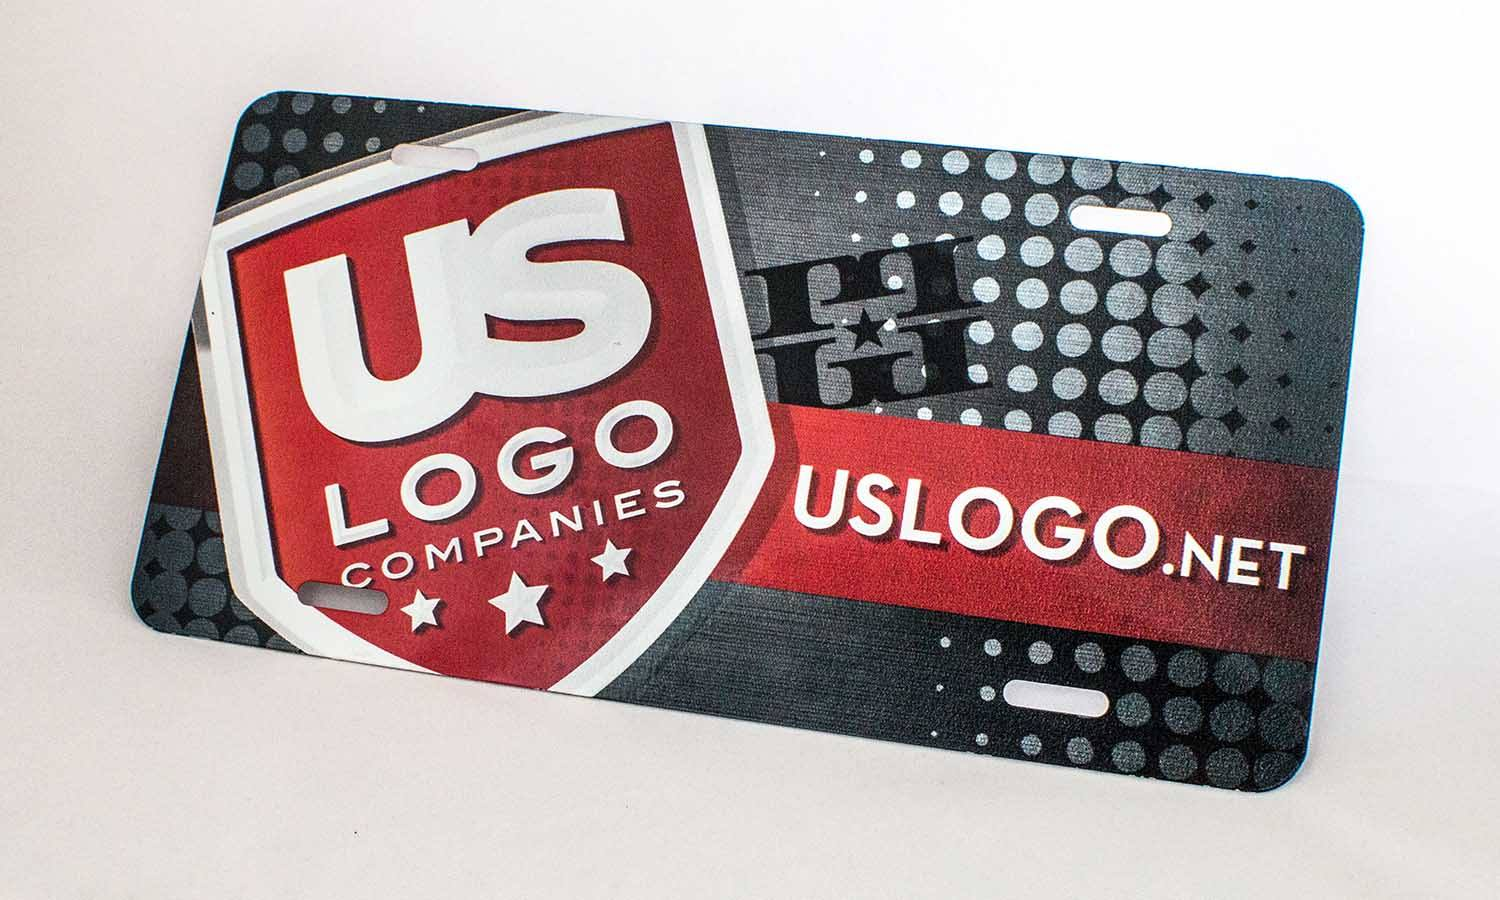 Promo by US Logo